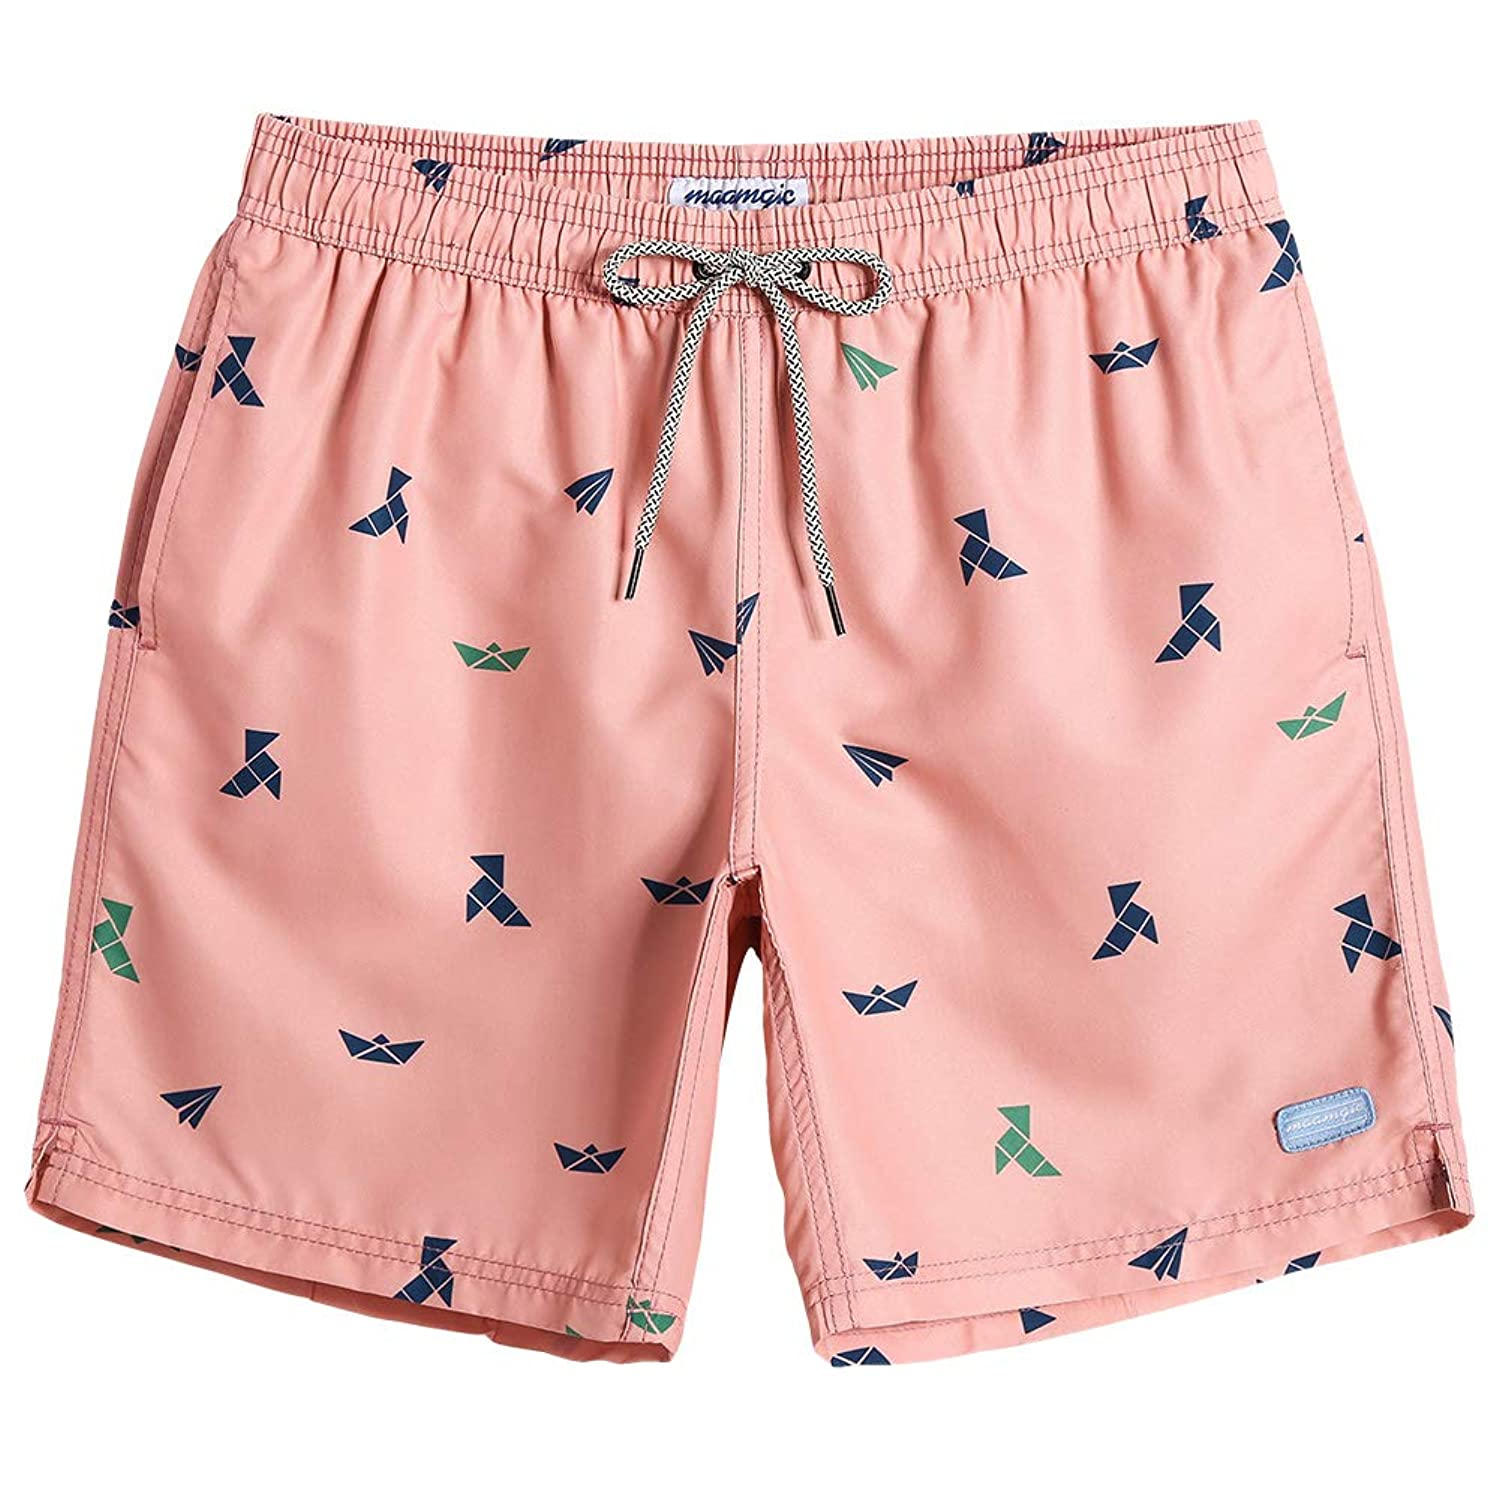 d16982ee1d slim fit design; one size up is recommanded if you prefer a looser fit. Mens  Swim Trunks: This Funny Pattern Bathing Suits For Men Get 5 Size:  S/M/L/XL/XXL ...